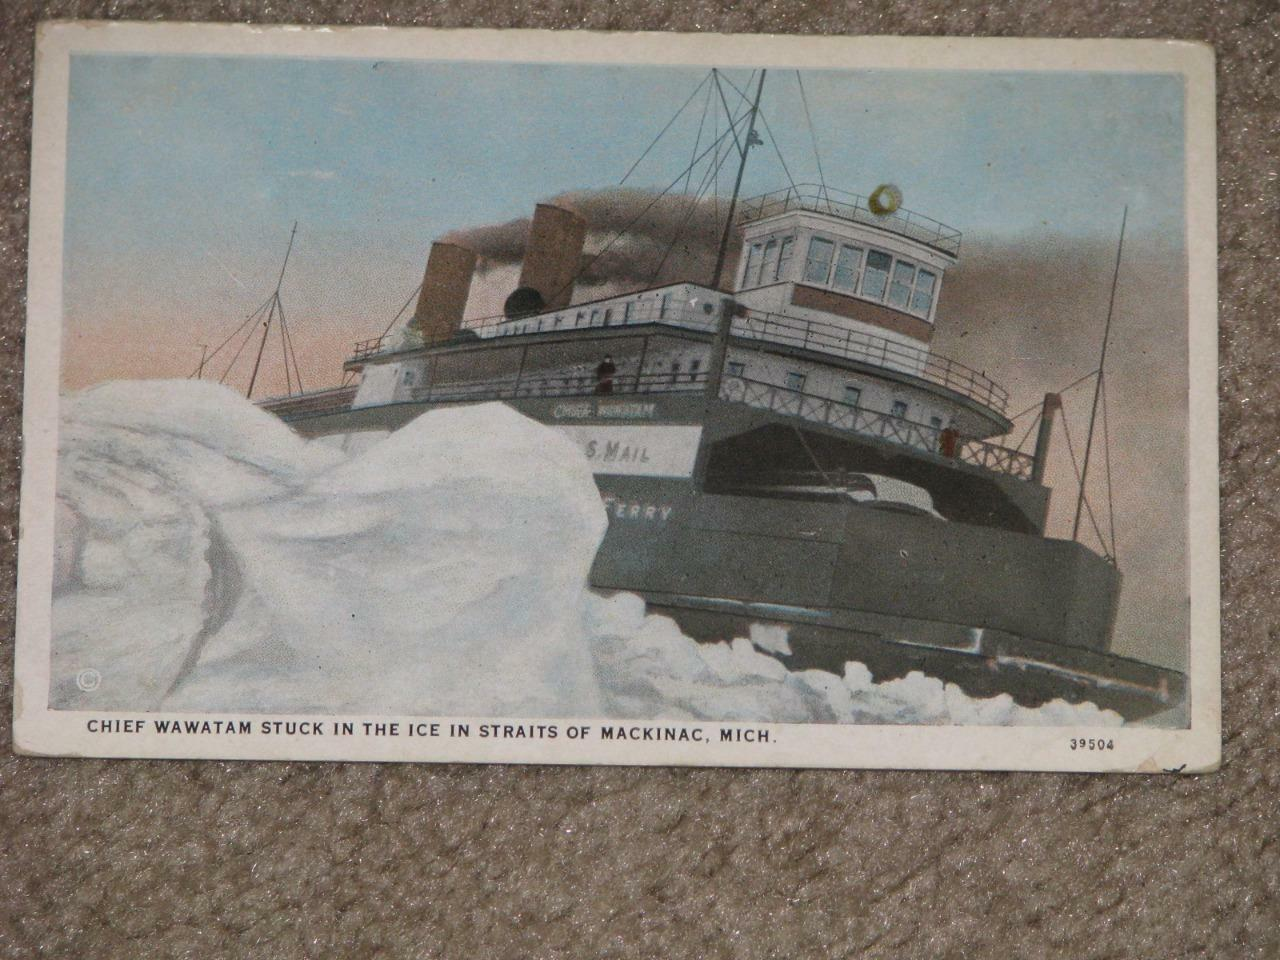 Chief Wawatam Stuck in the Ice in Straits of Mackinac, Mich., vintage card